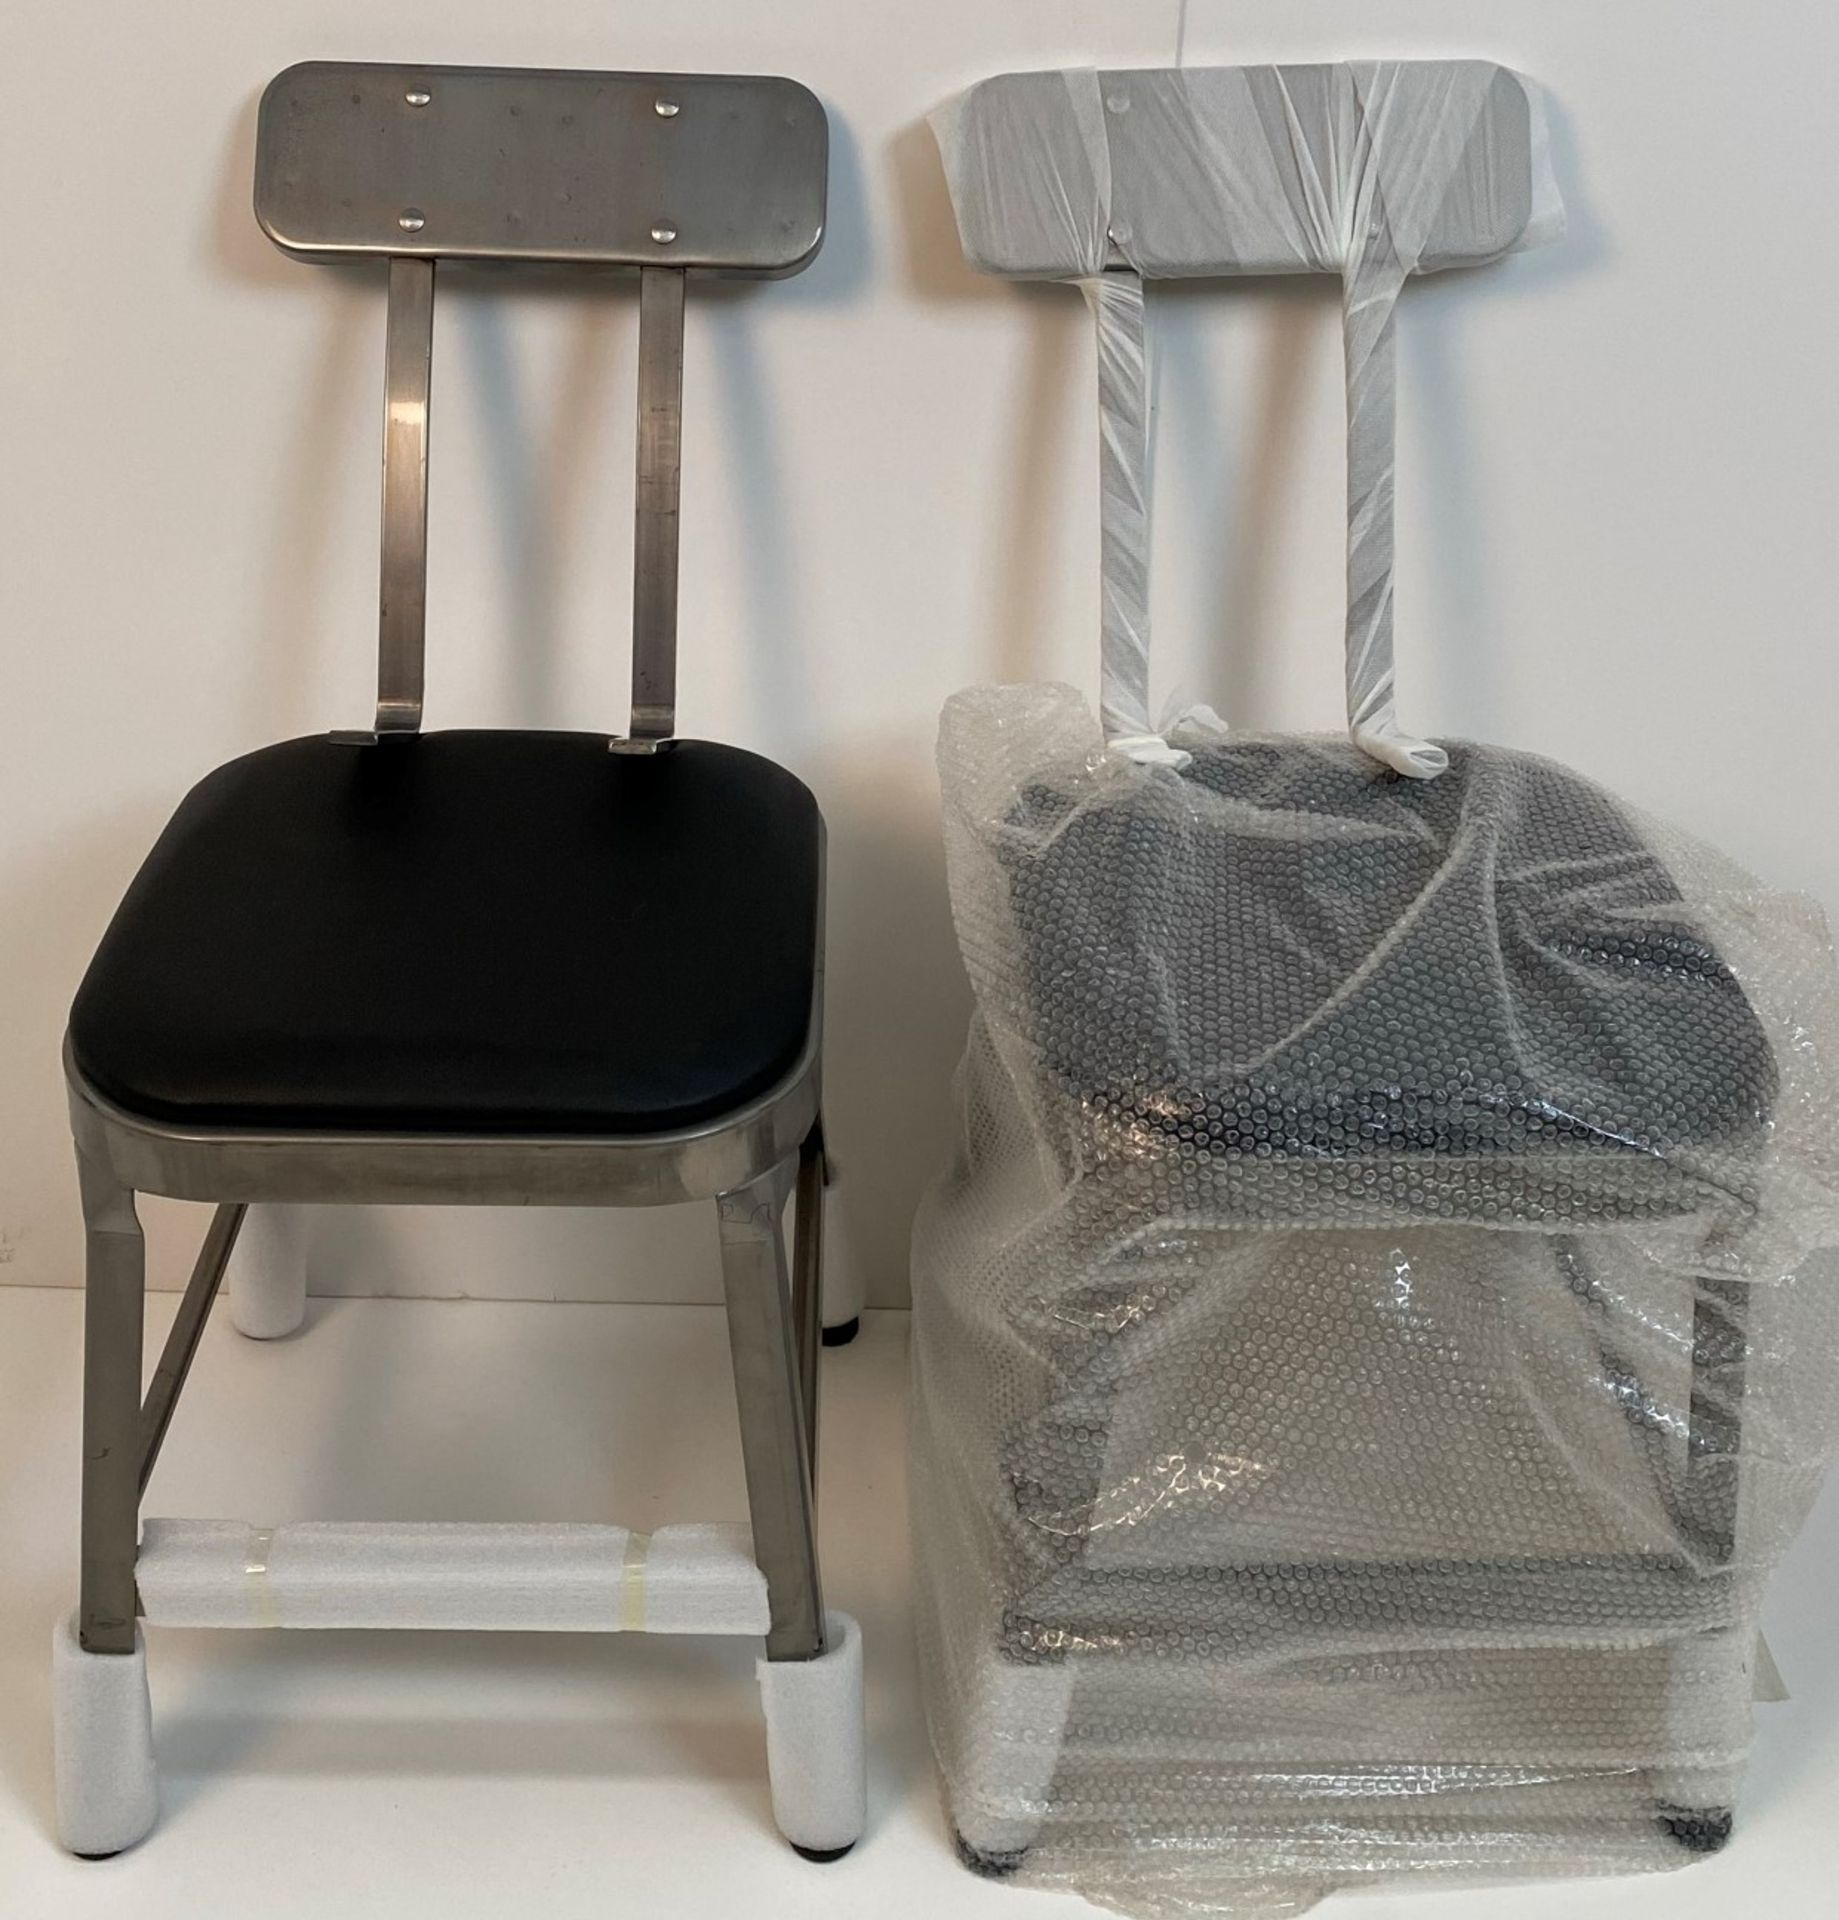 2 x Calypso Brushed Transparent Finish Metal Framed Bar Stools/Dining Chairs with Black Pad and